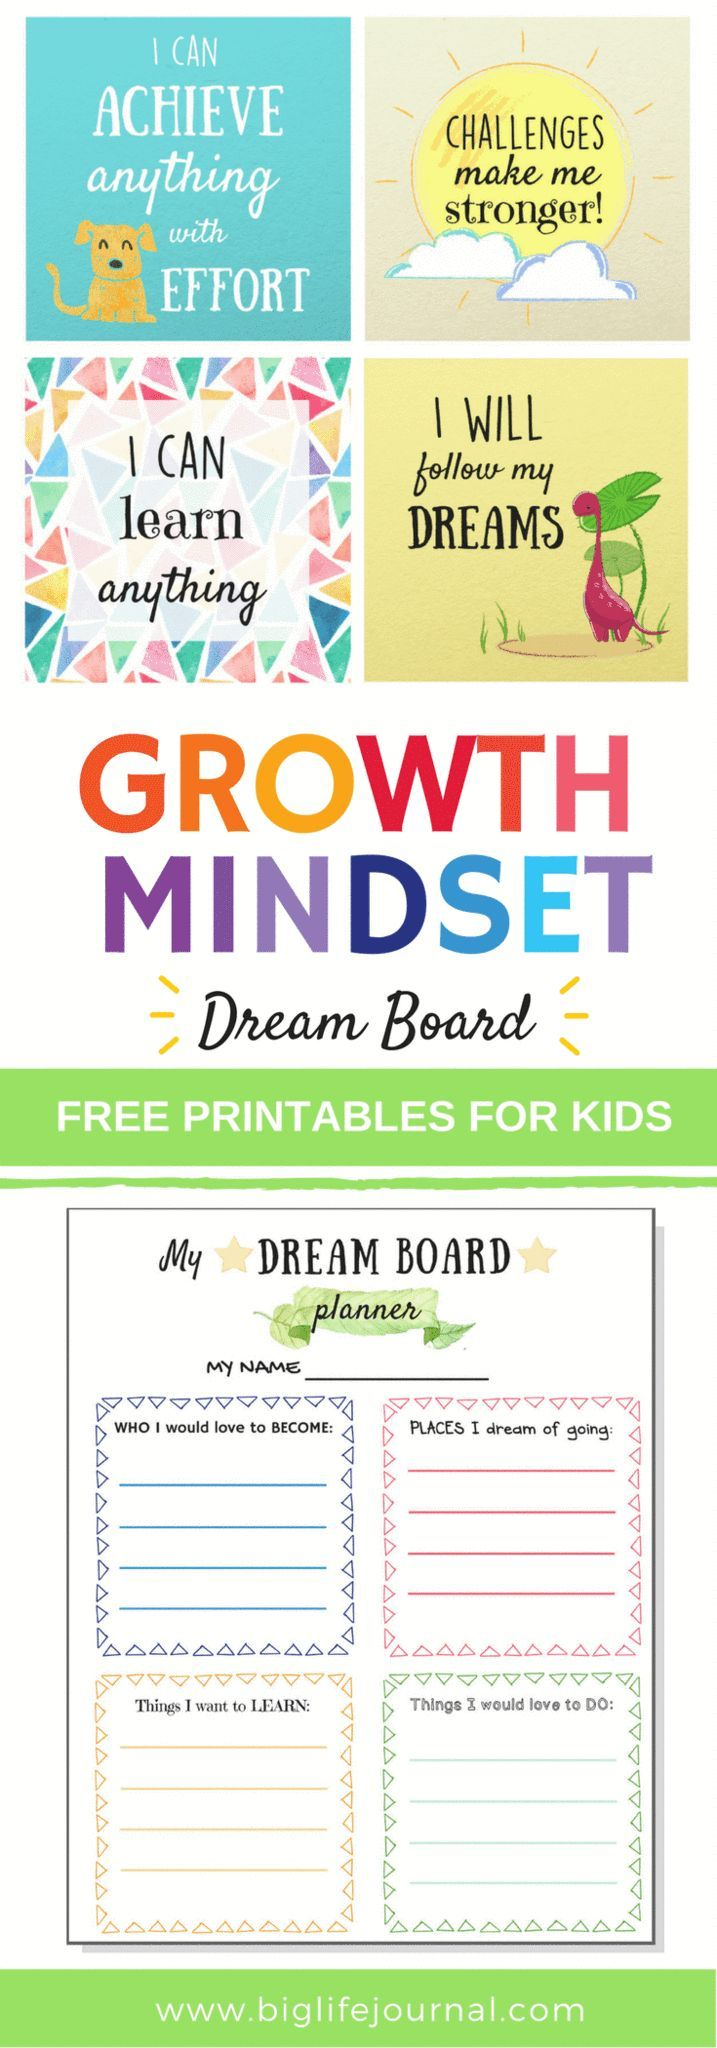 Free Growth Mindset Printables For Kids To Help Them Create Their Dream  (vision) Boards